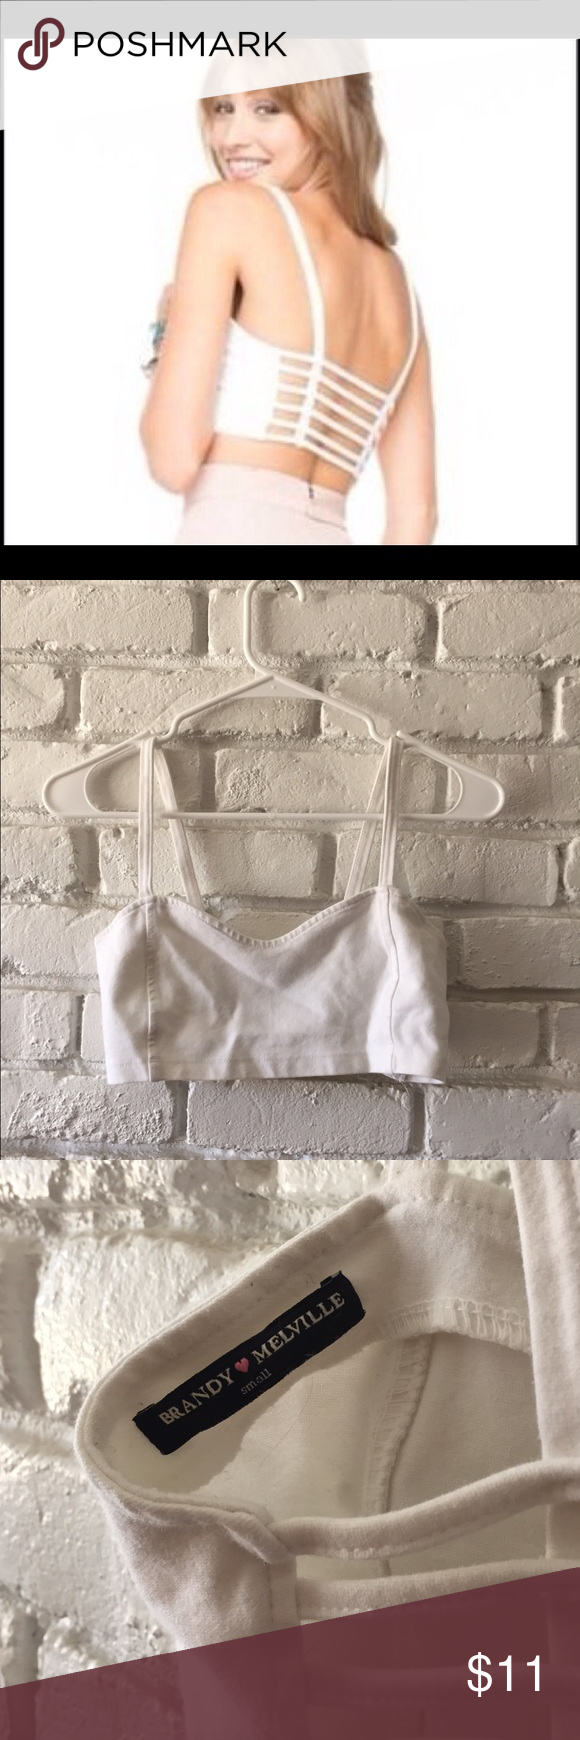 Brandy Melville Chiyo top/bralette Super cute bralette/ top with caged top.  Perfect to layer with the cute caged back. I never got around to wearing it and eventually forgot about it so that's why it's here :).  Super cute and stretchy so I think I could fit sizes from s-m.  In great condition. Brandy Melville Intimates & Sleepwear Bras